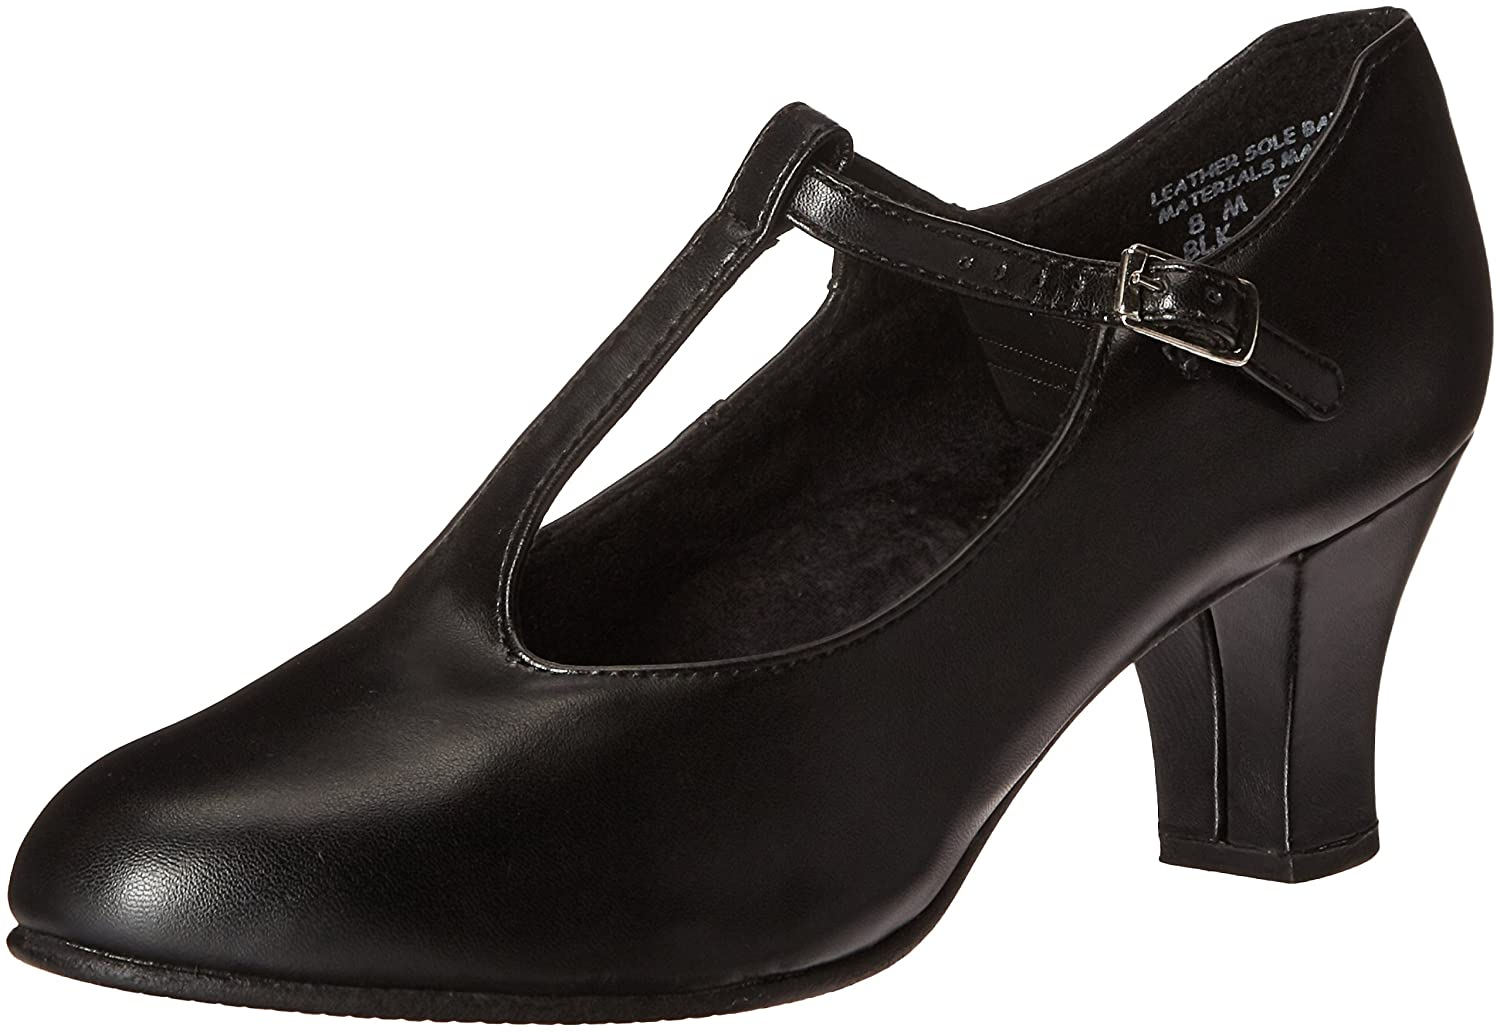 Capezio Women's Jr. Footlight T-Strap Dance Shoe B008QR7NQ8 12.5 B(M) US|Black